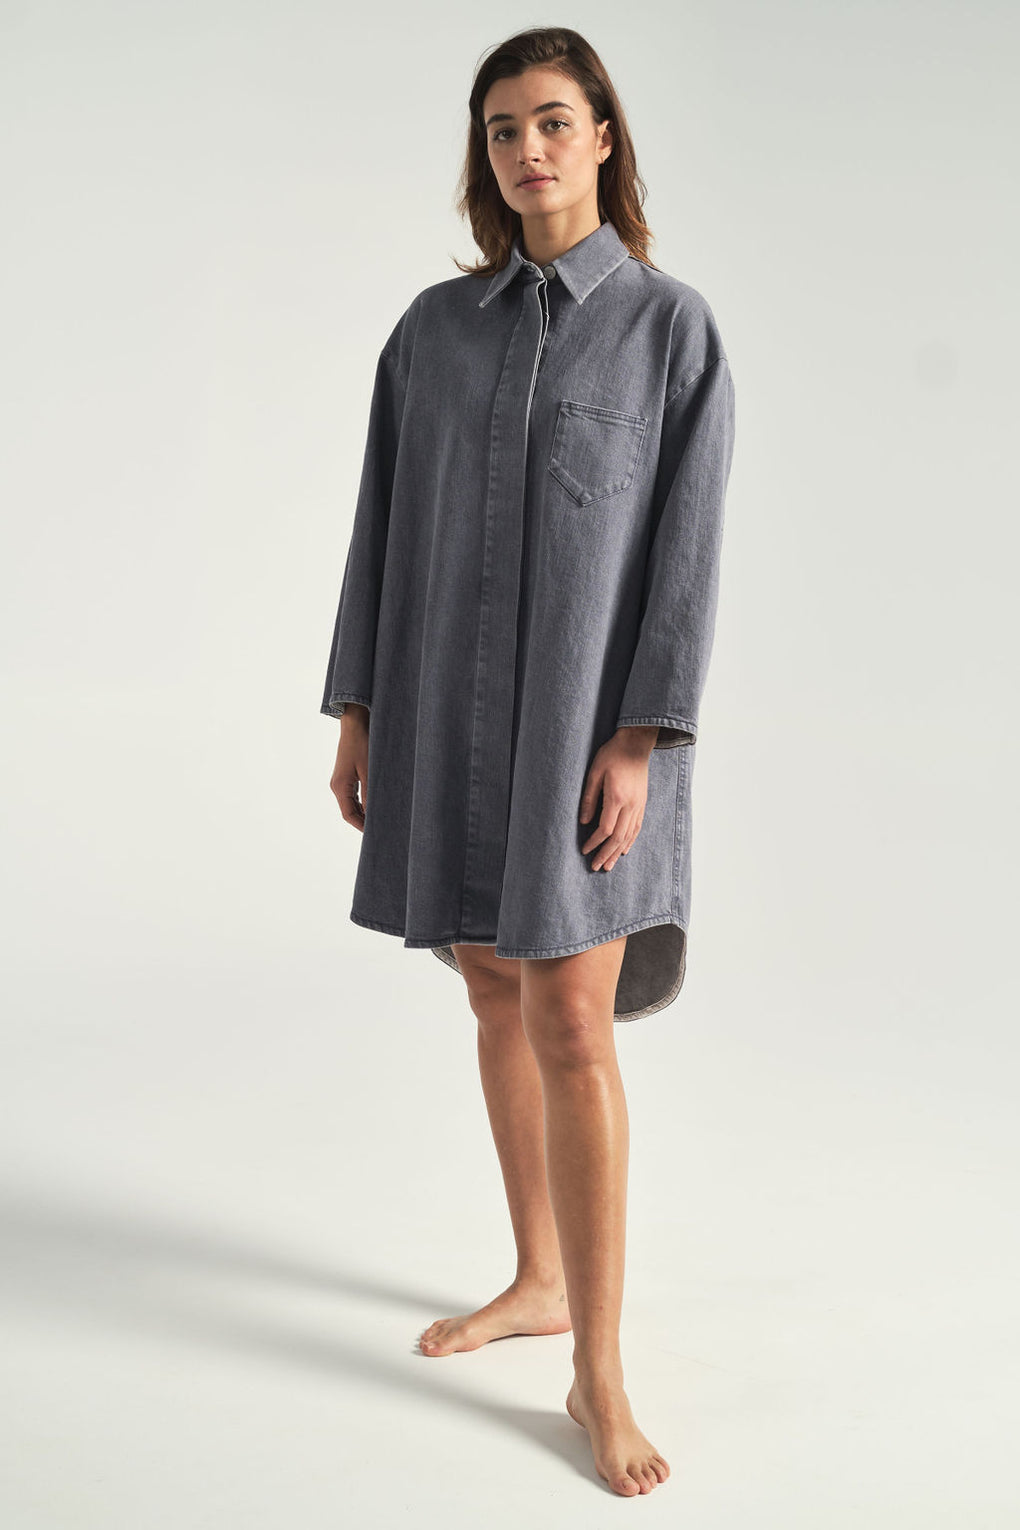 MM6 by Maison Margiela-denim coat-denim overcoat-Idun-St.Paul-denim dress